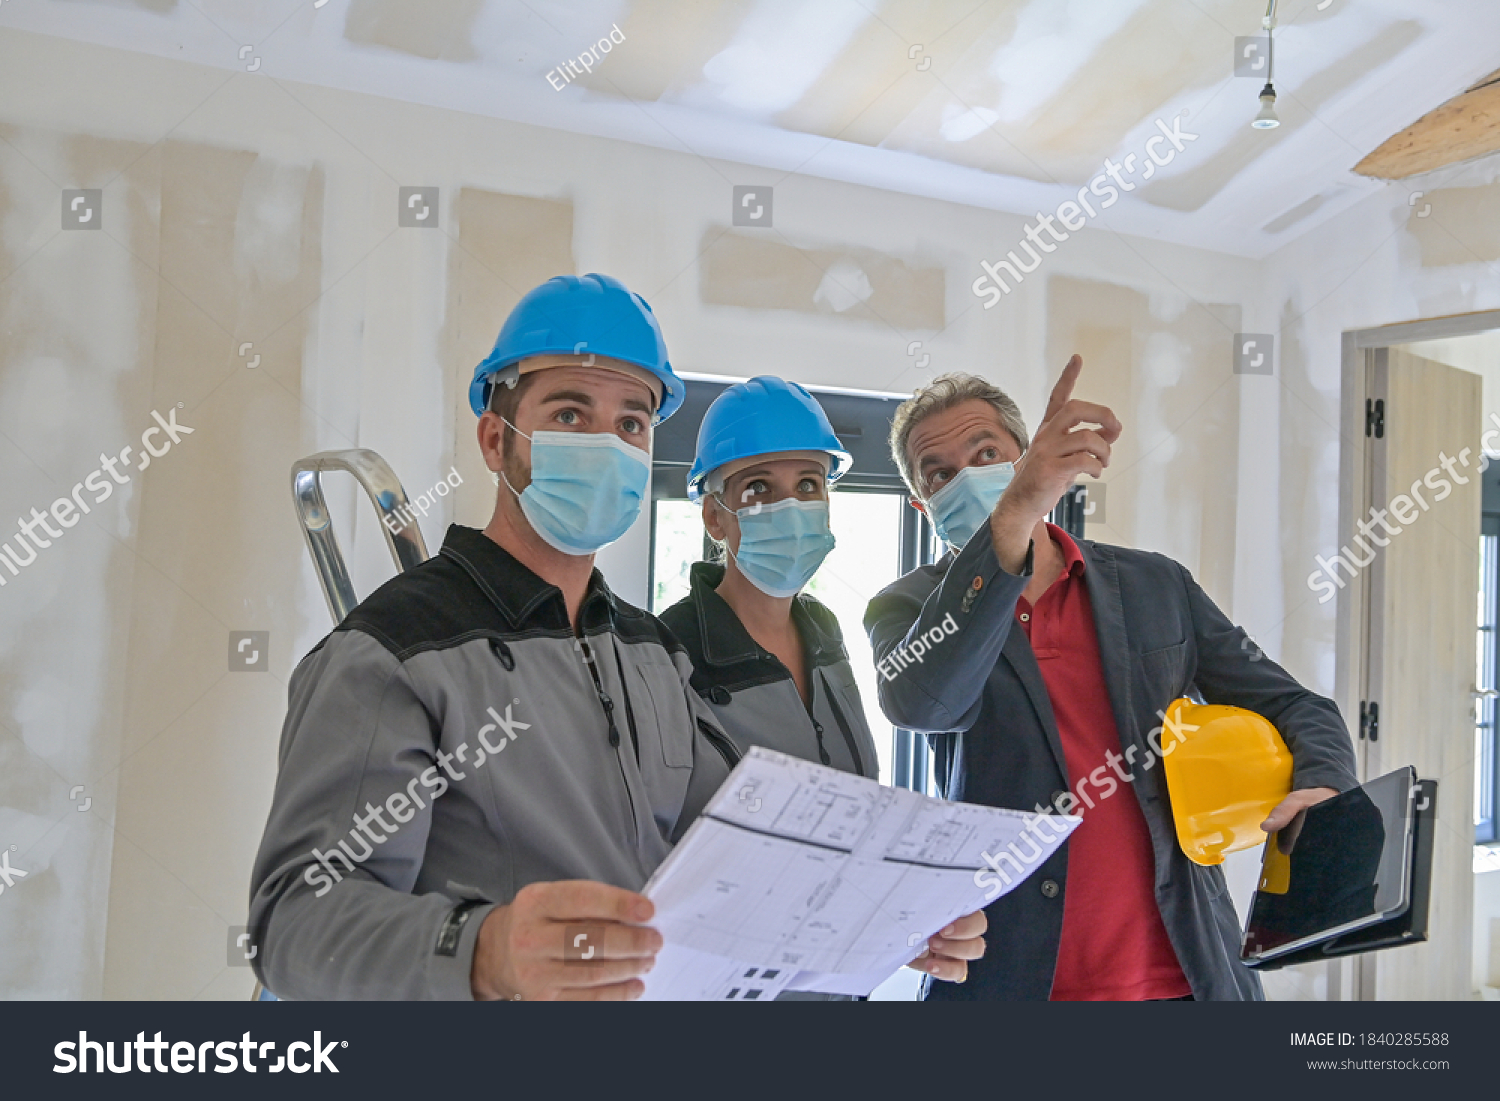 Professional meeting on a construction site between the architect and the craftsmen who wear a protective mask against covid-19 #1840285588